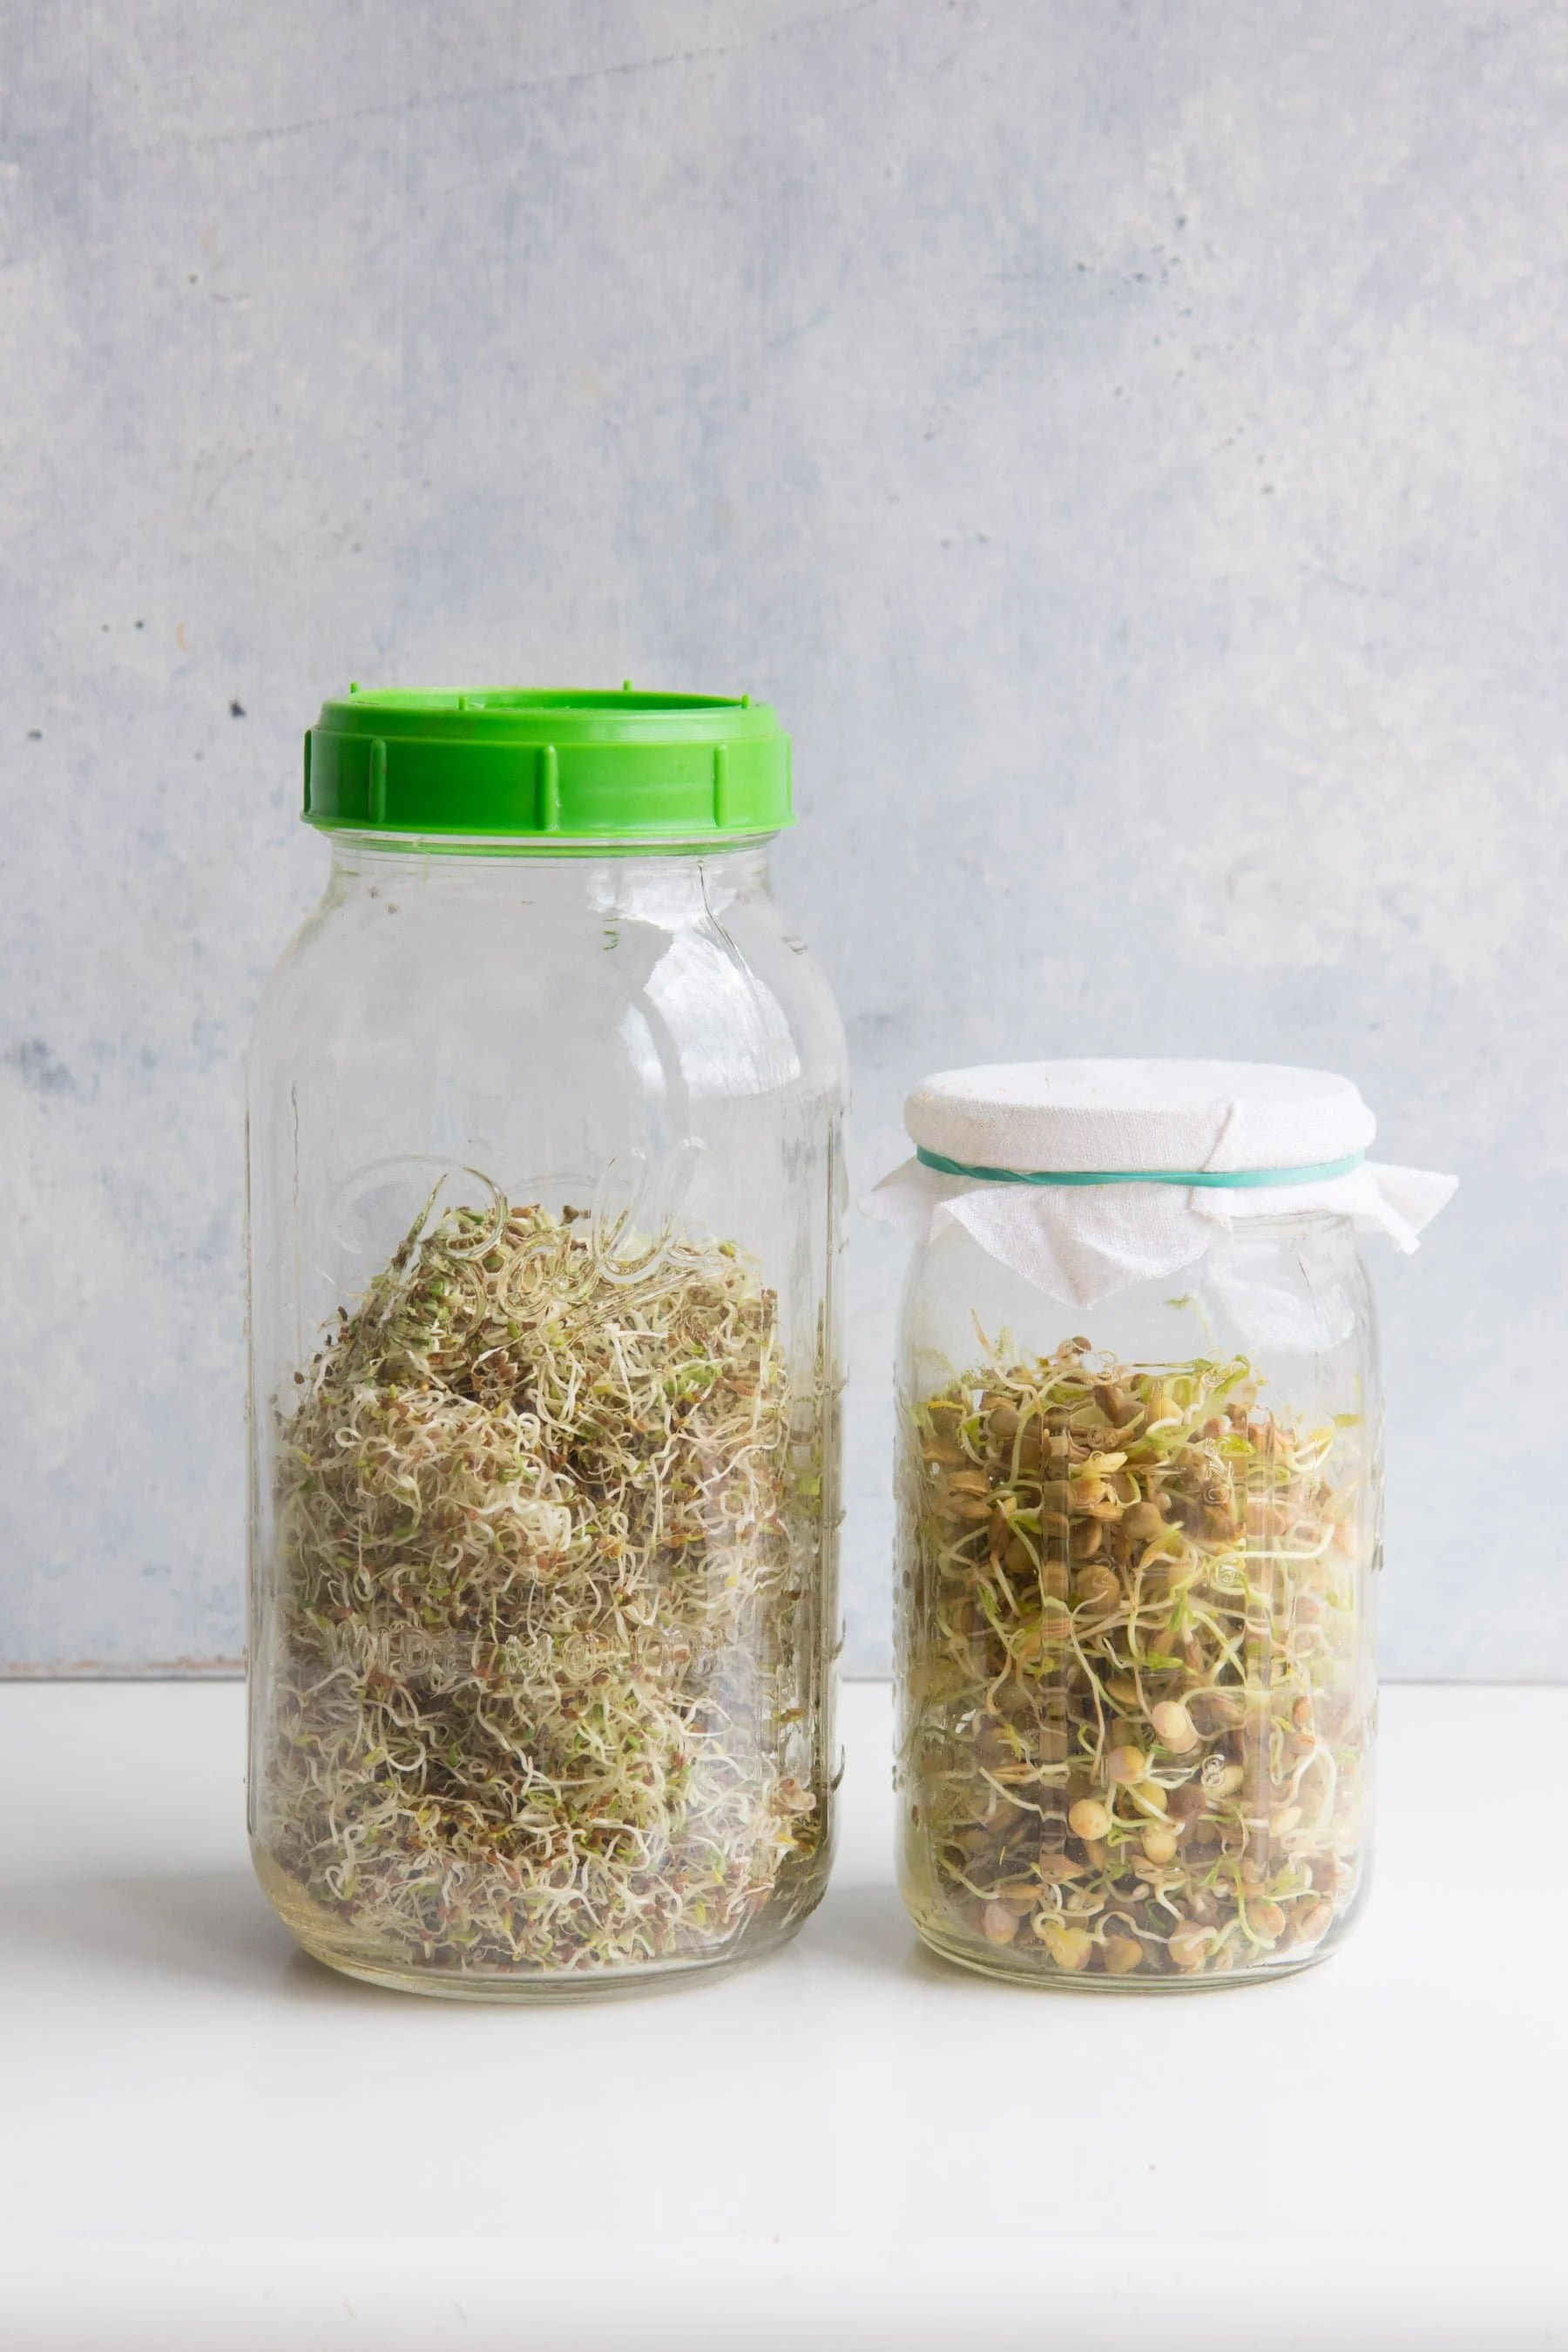 Two mason jars side-by-side filled with clover and lentil sprouts